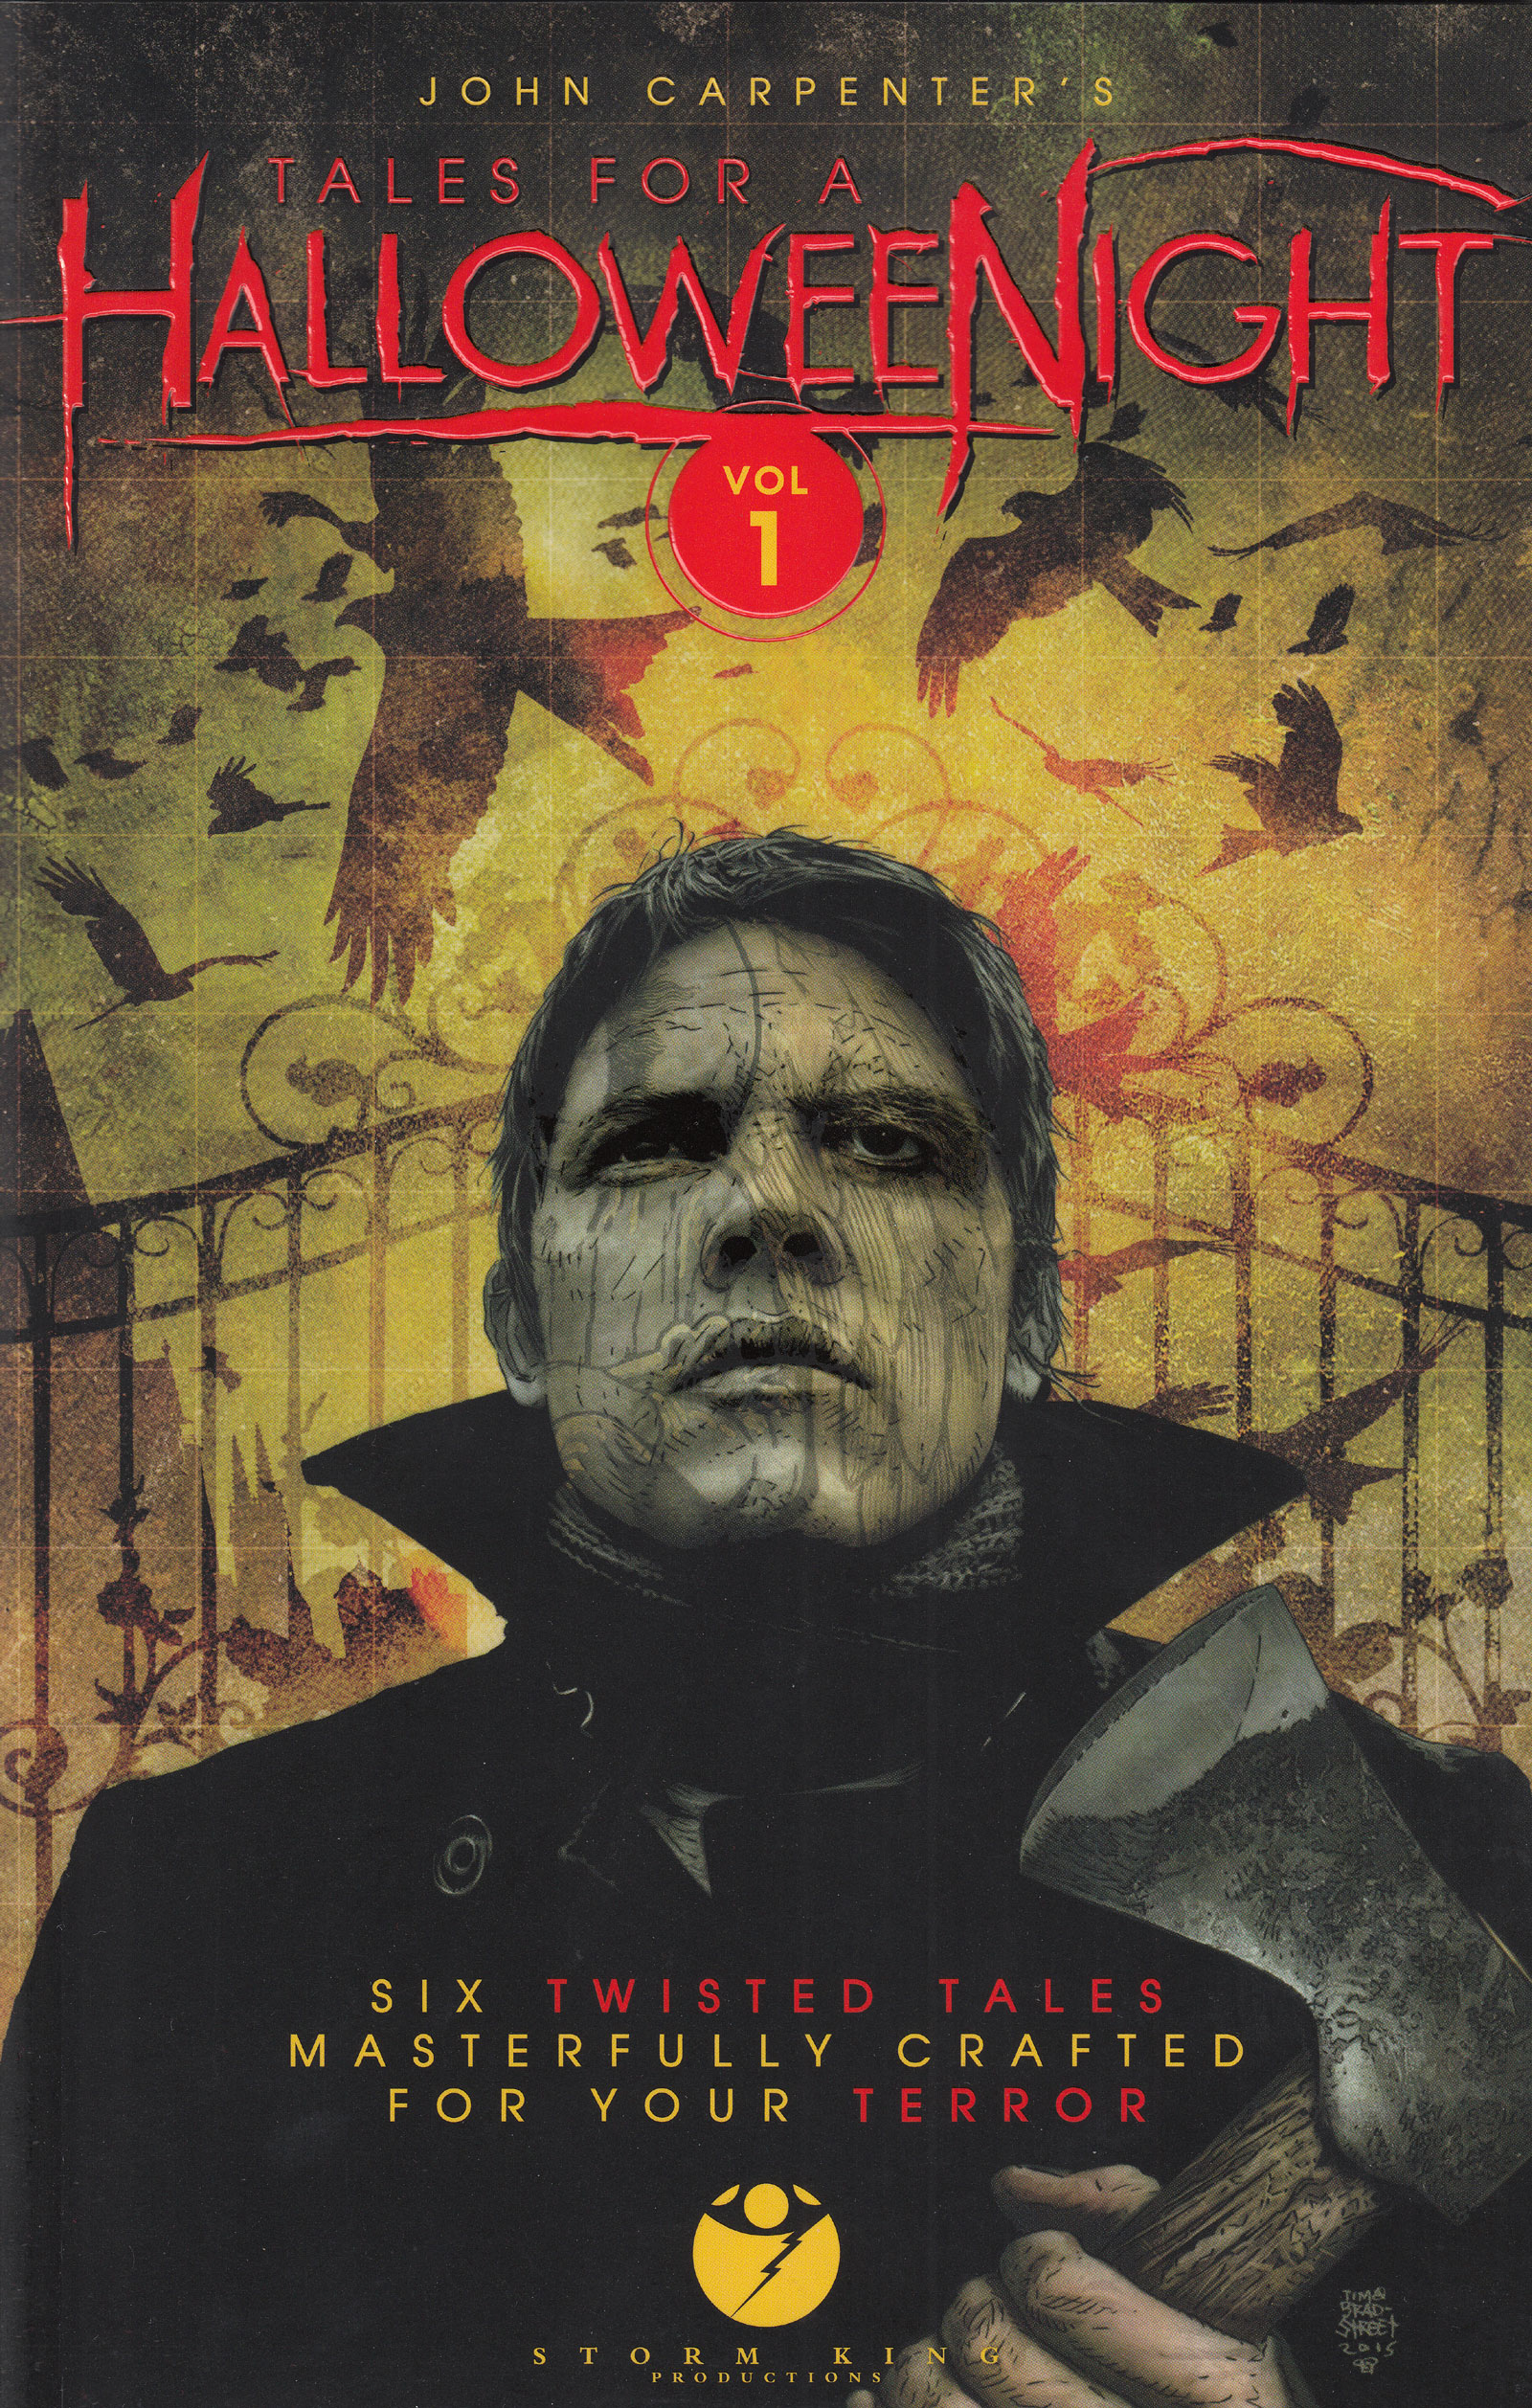 john carpenter releases halloween horror graphic novel! – the 13th floor